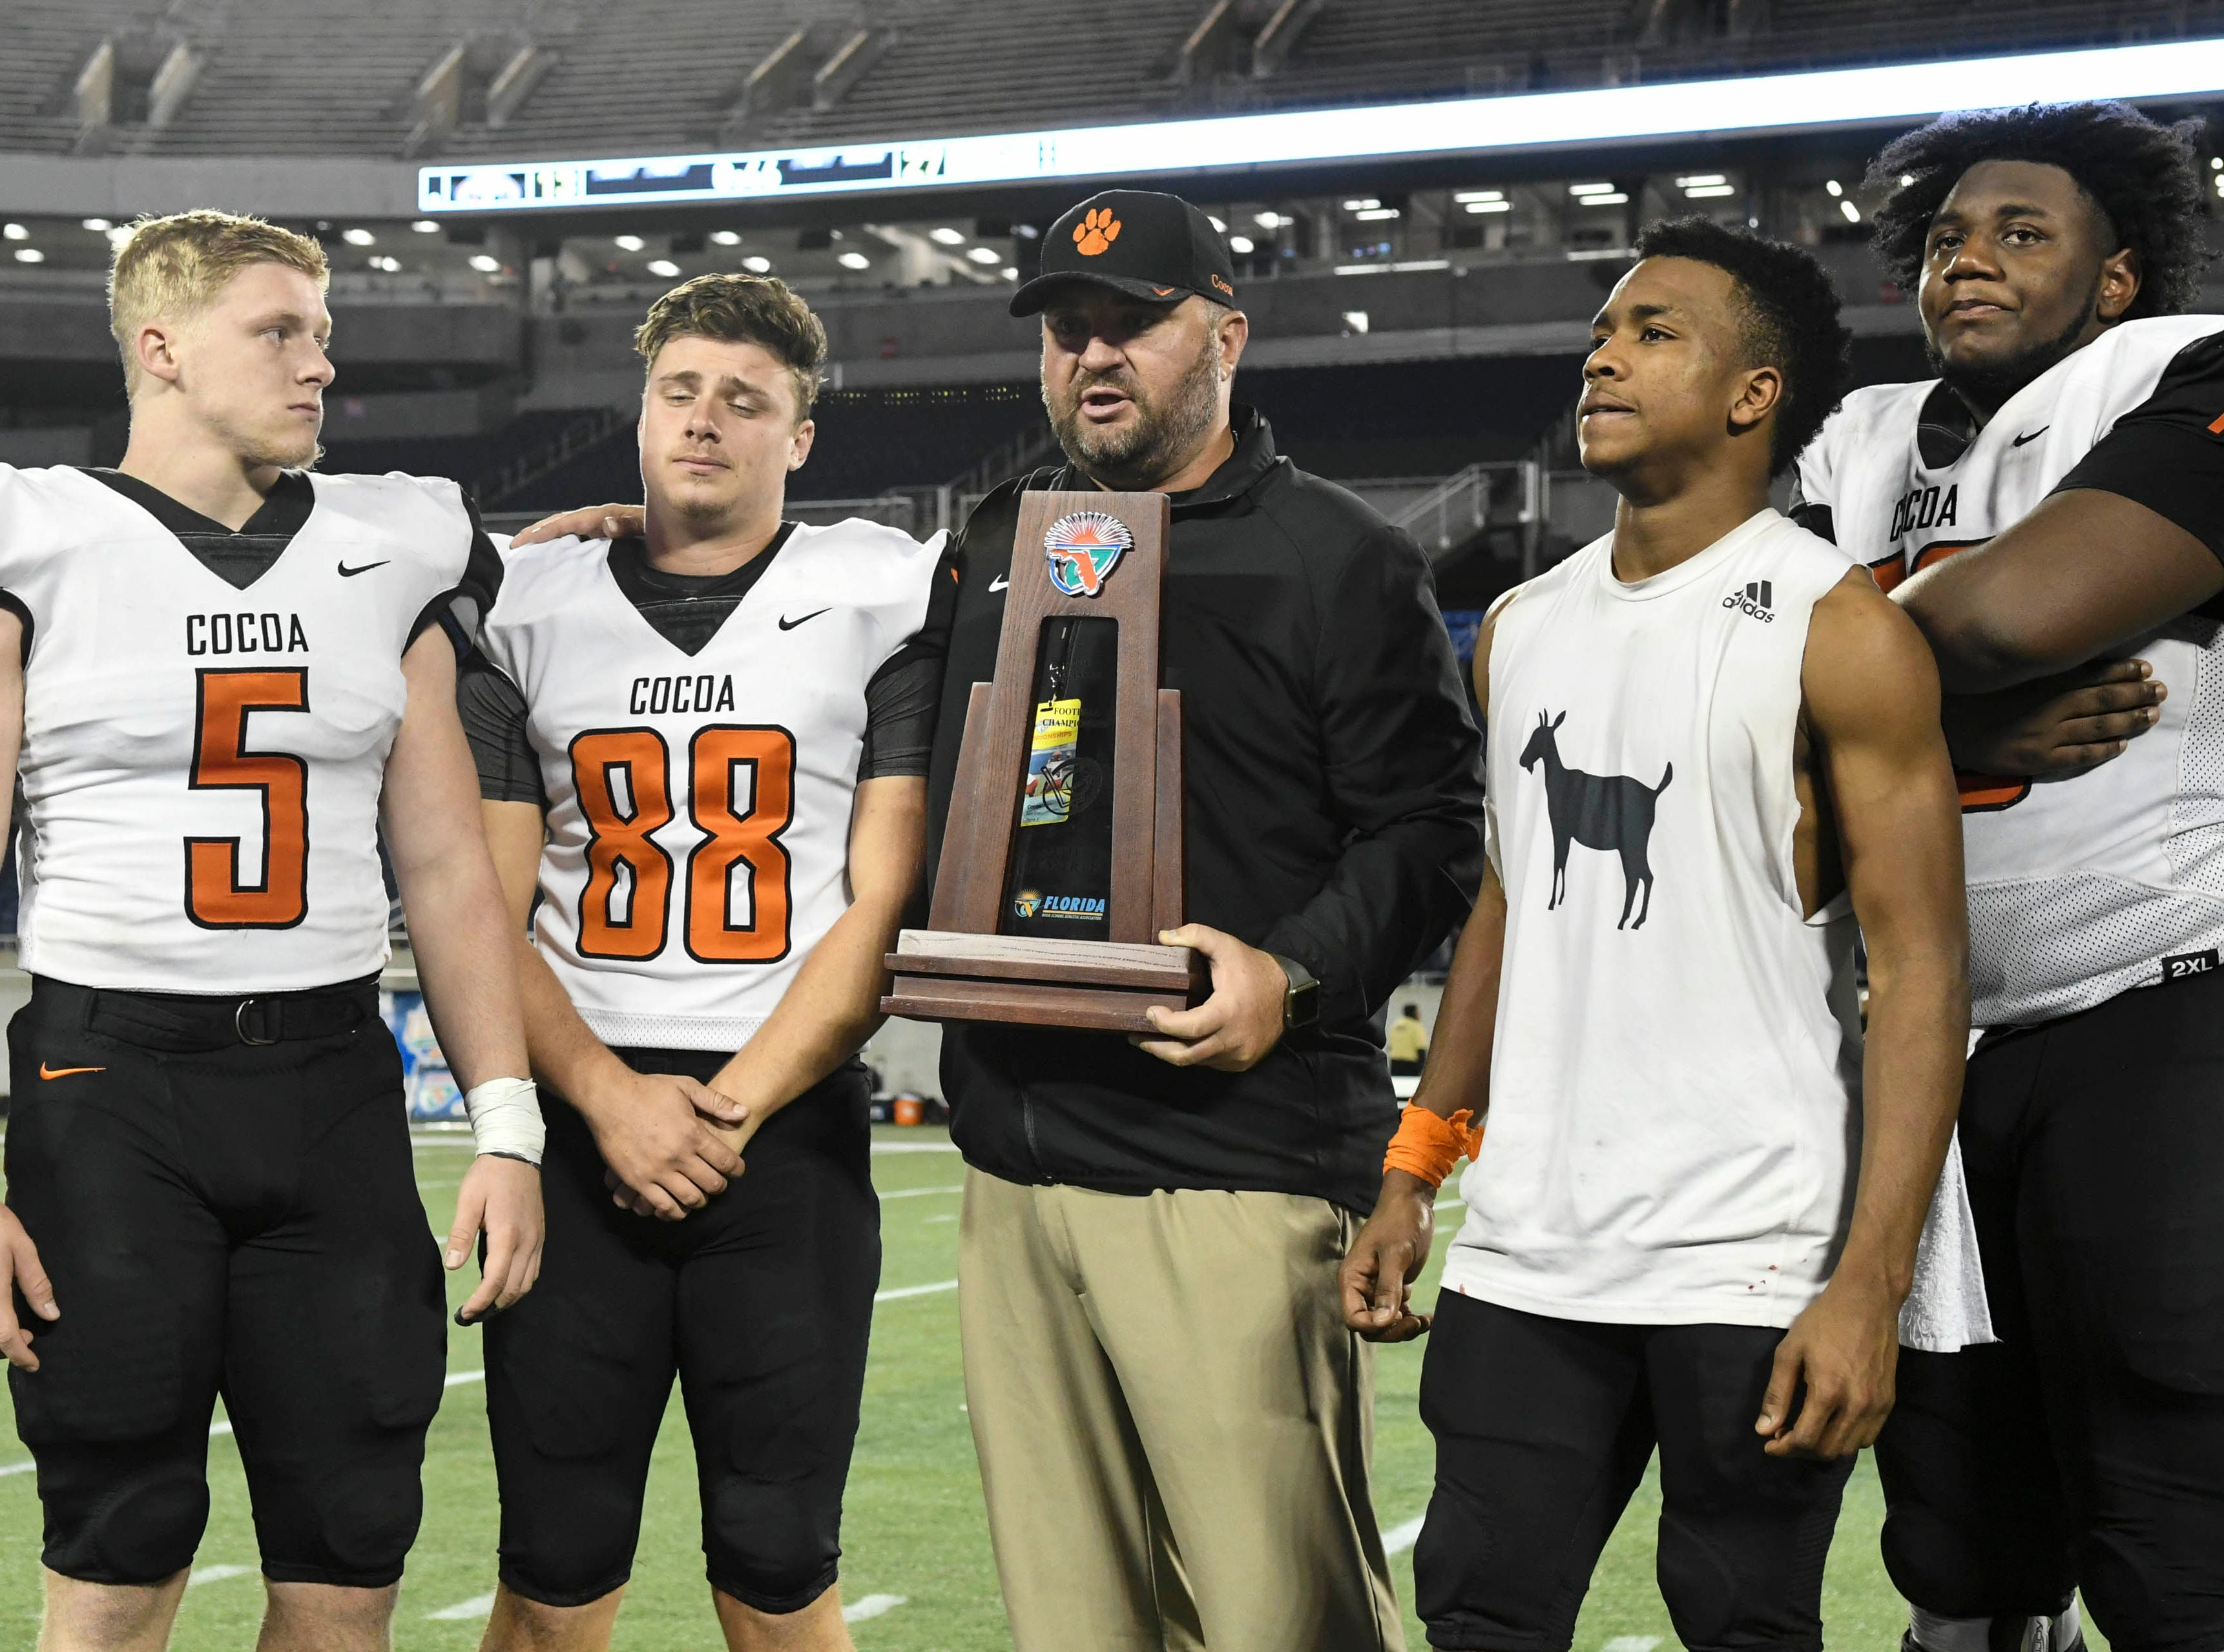 Coach Ryan Schneider and seniors Brock Holland, Alex Petruzzello, Willie Gaines and Richie Leonard stand with the Class 4A runner up trophy after Thursday's Class 4A football state championship.